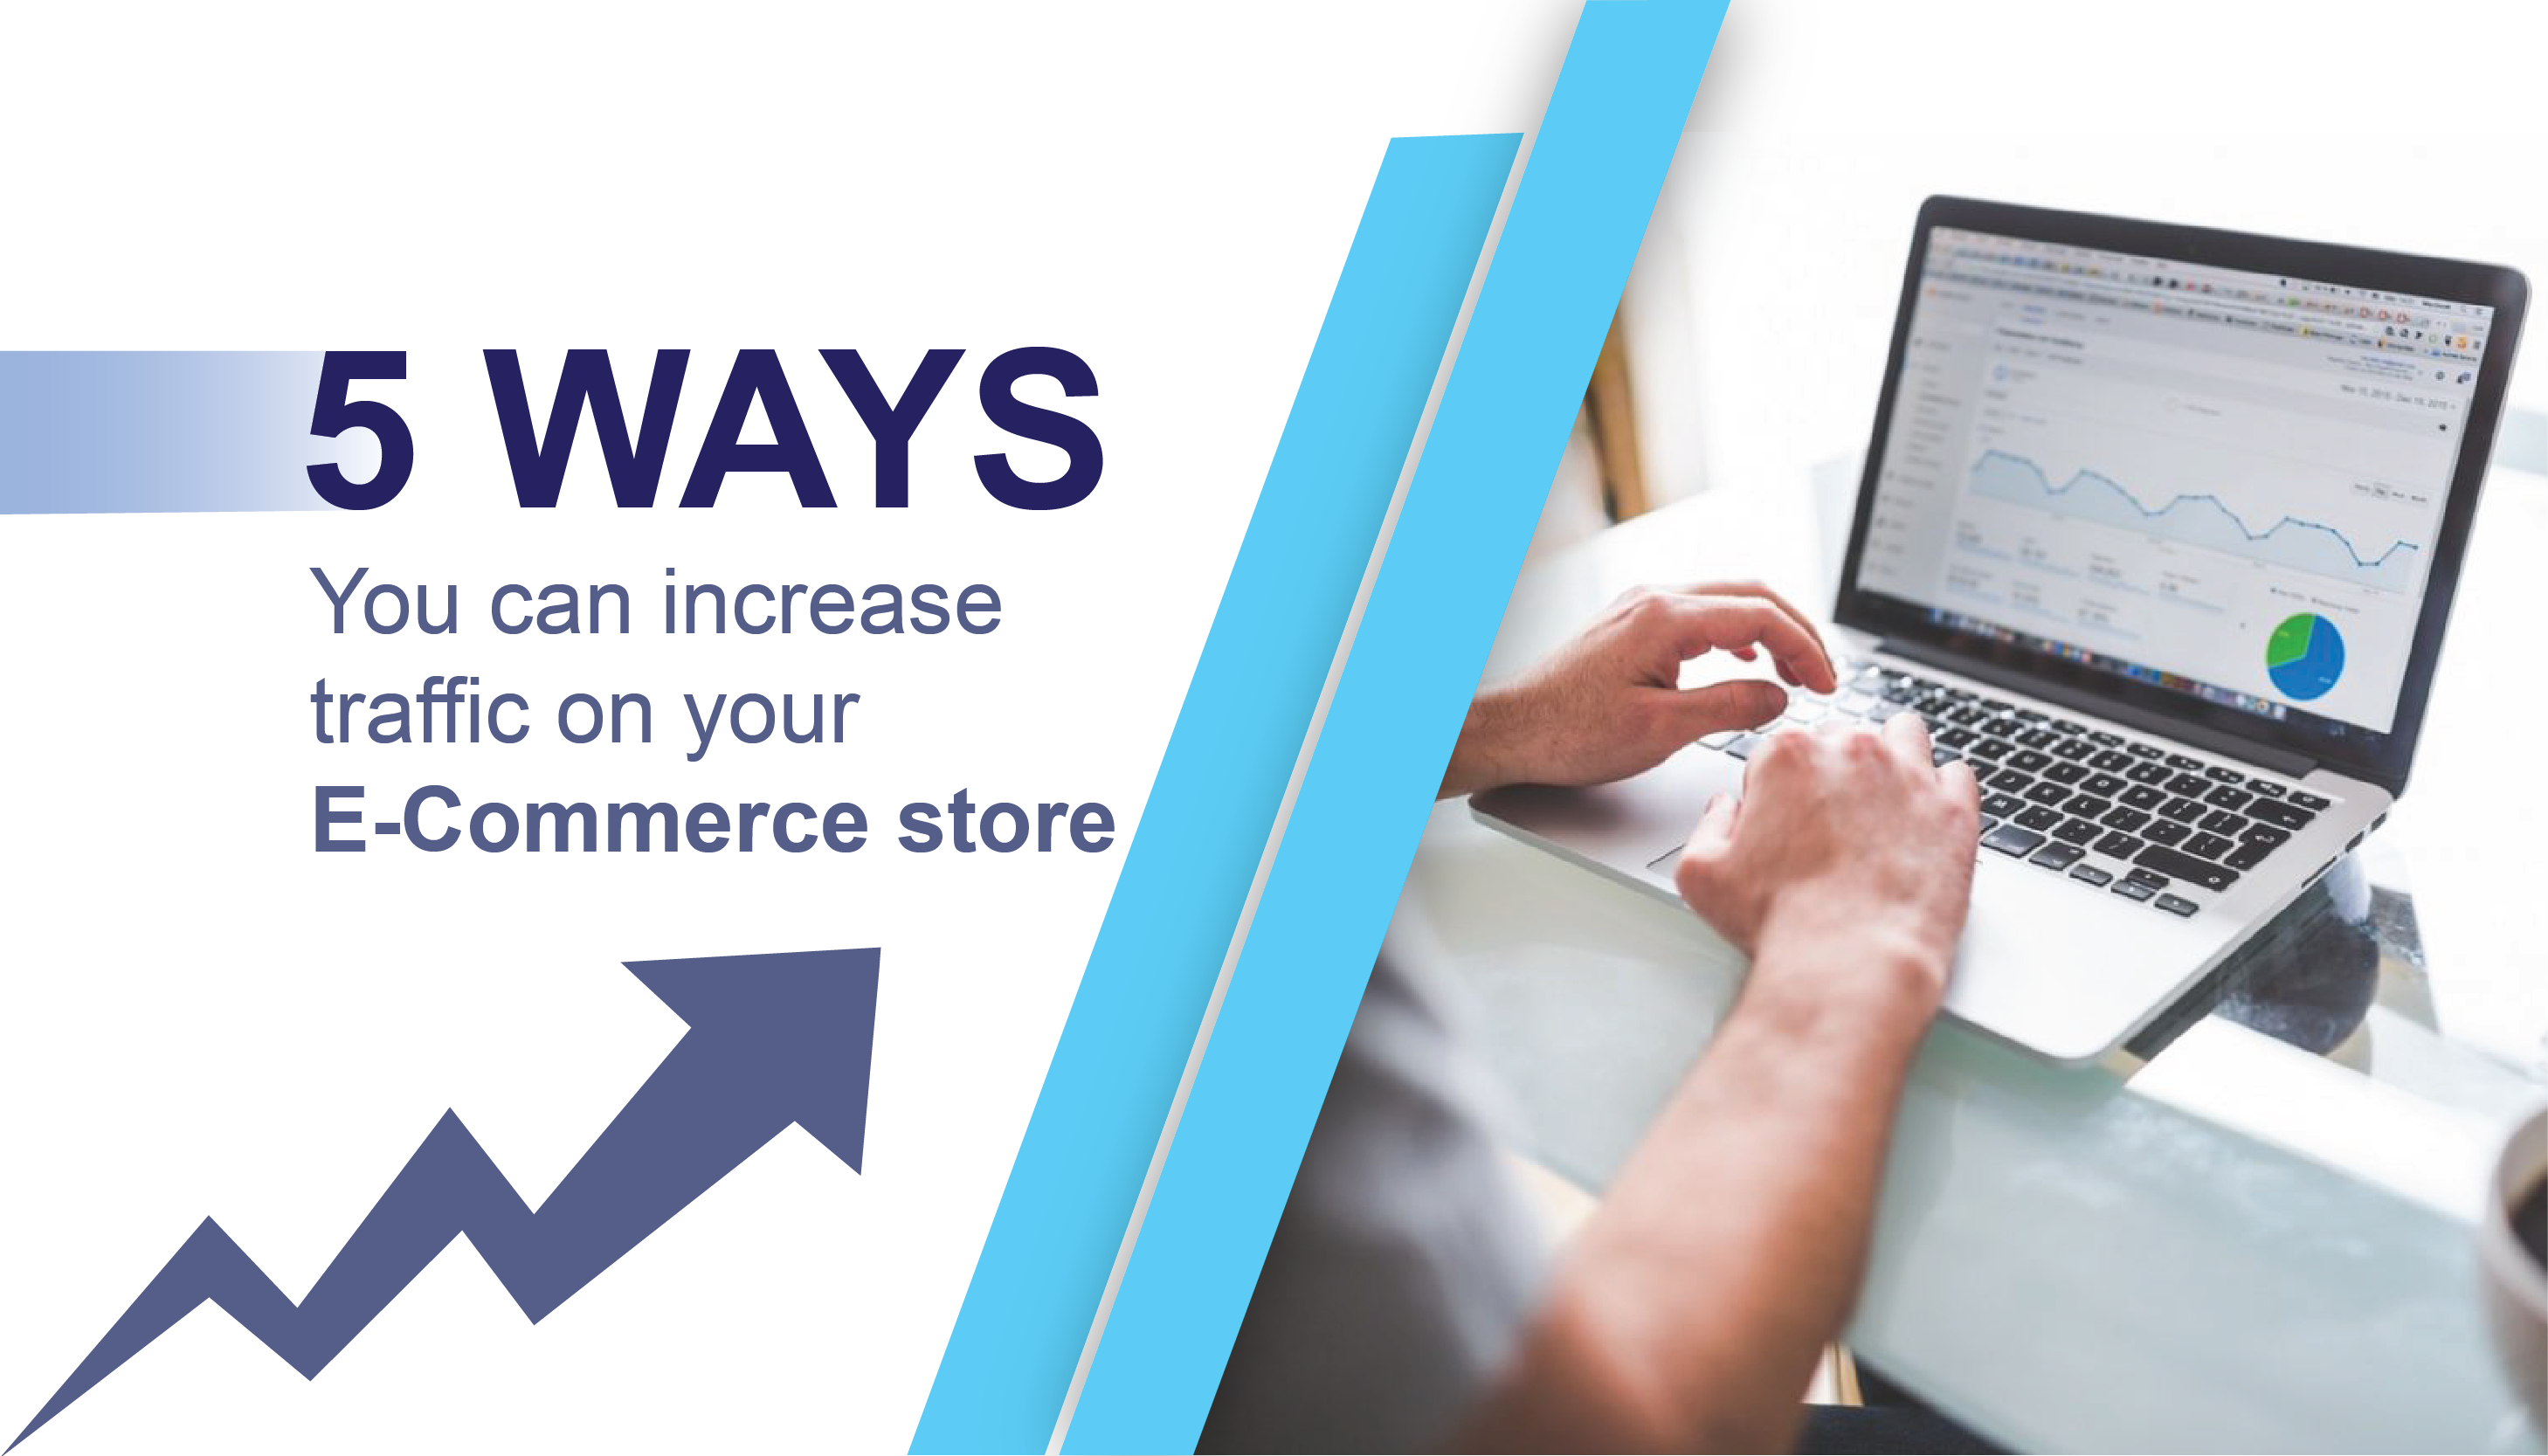 5 Ways to attract more customers to your eCommerce store